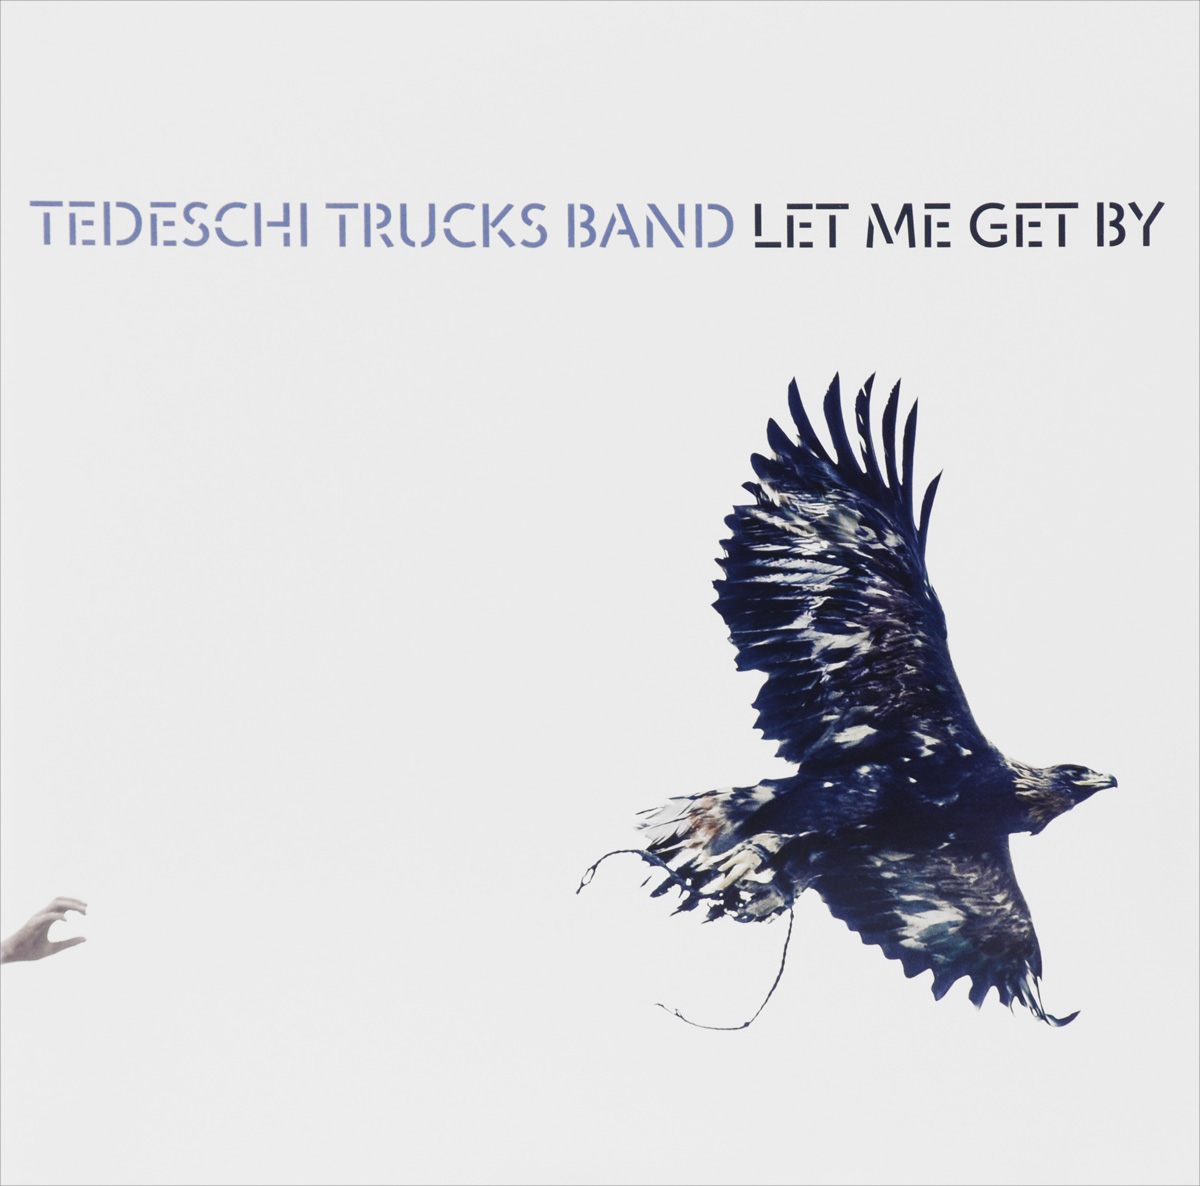 Tedeschi Trucks Band Band. Let Me Get By (2 LP)